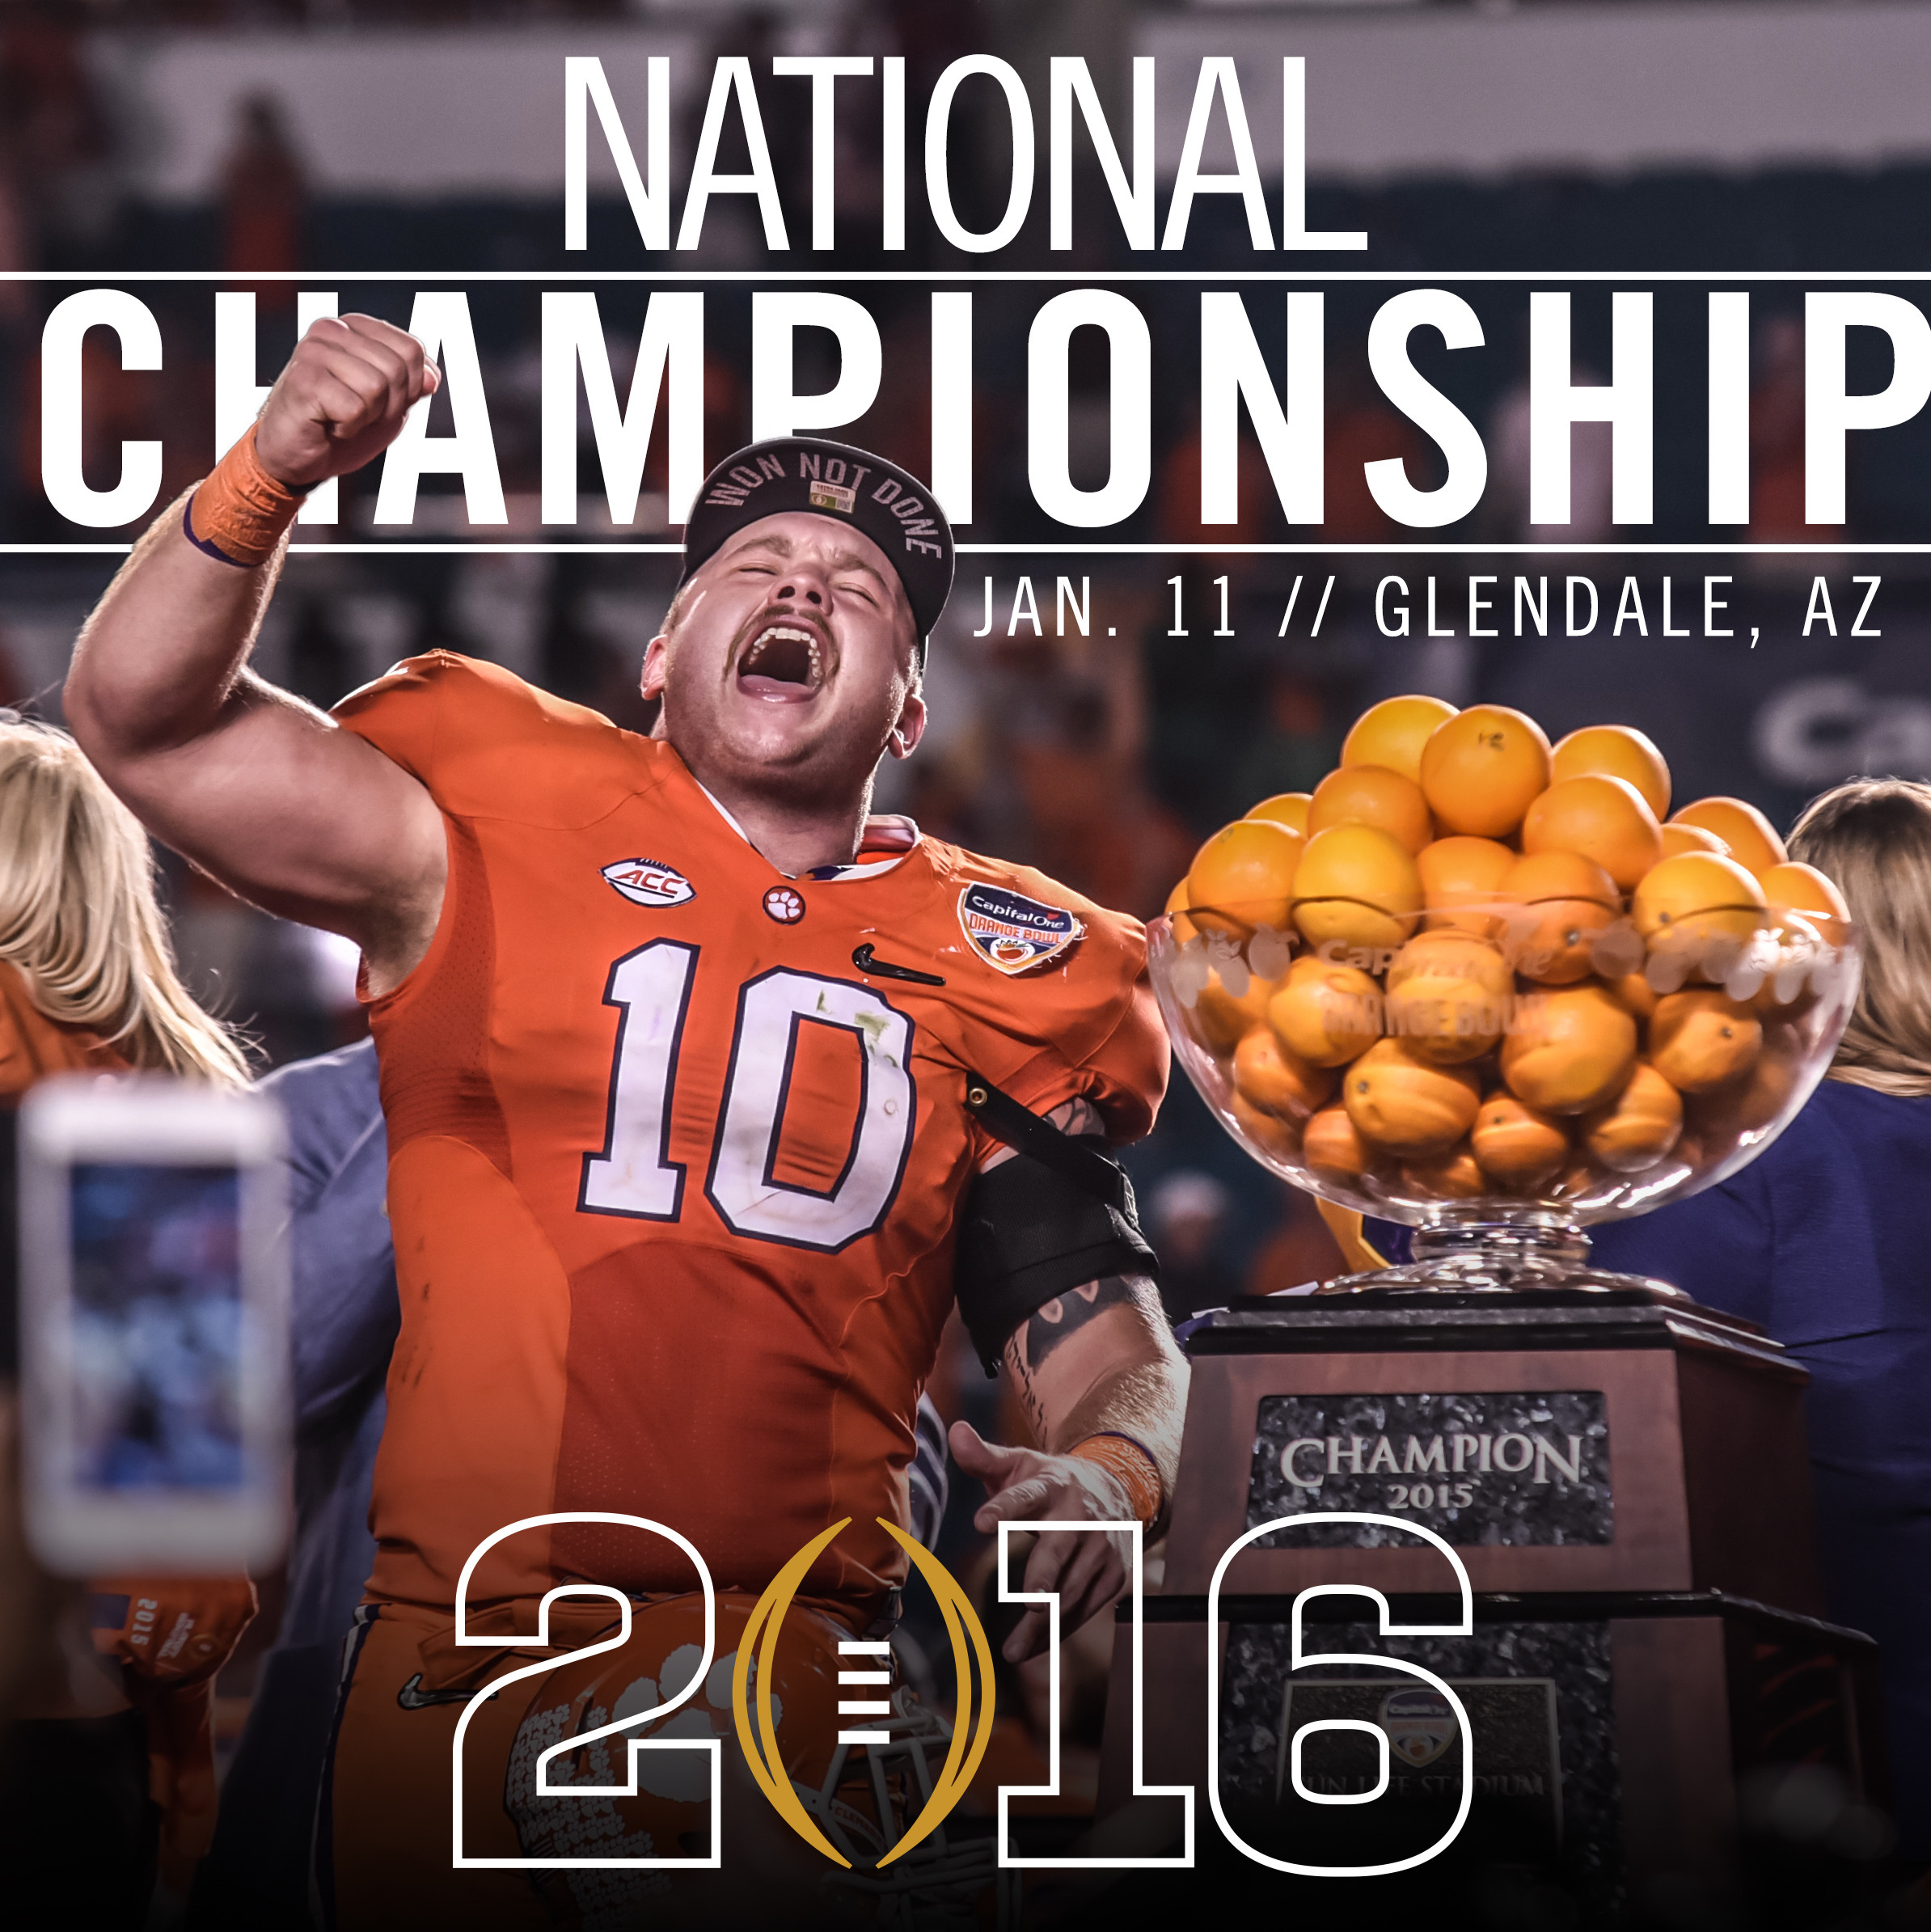 National Championship Info